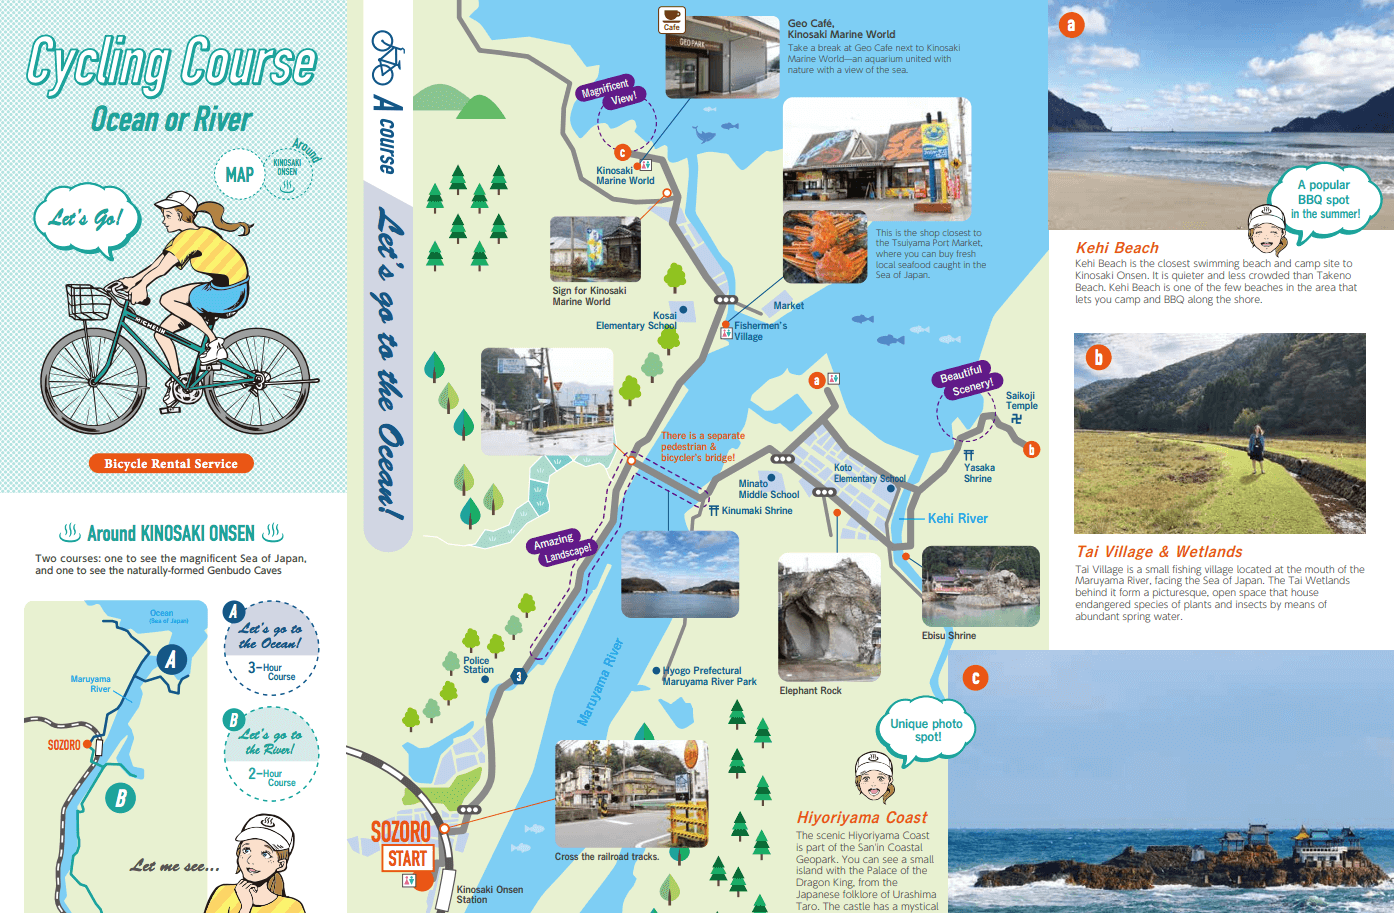 Self-guided cycle tours